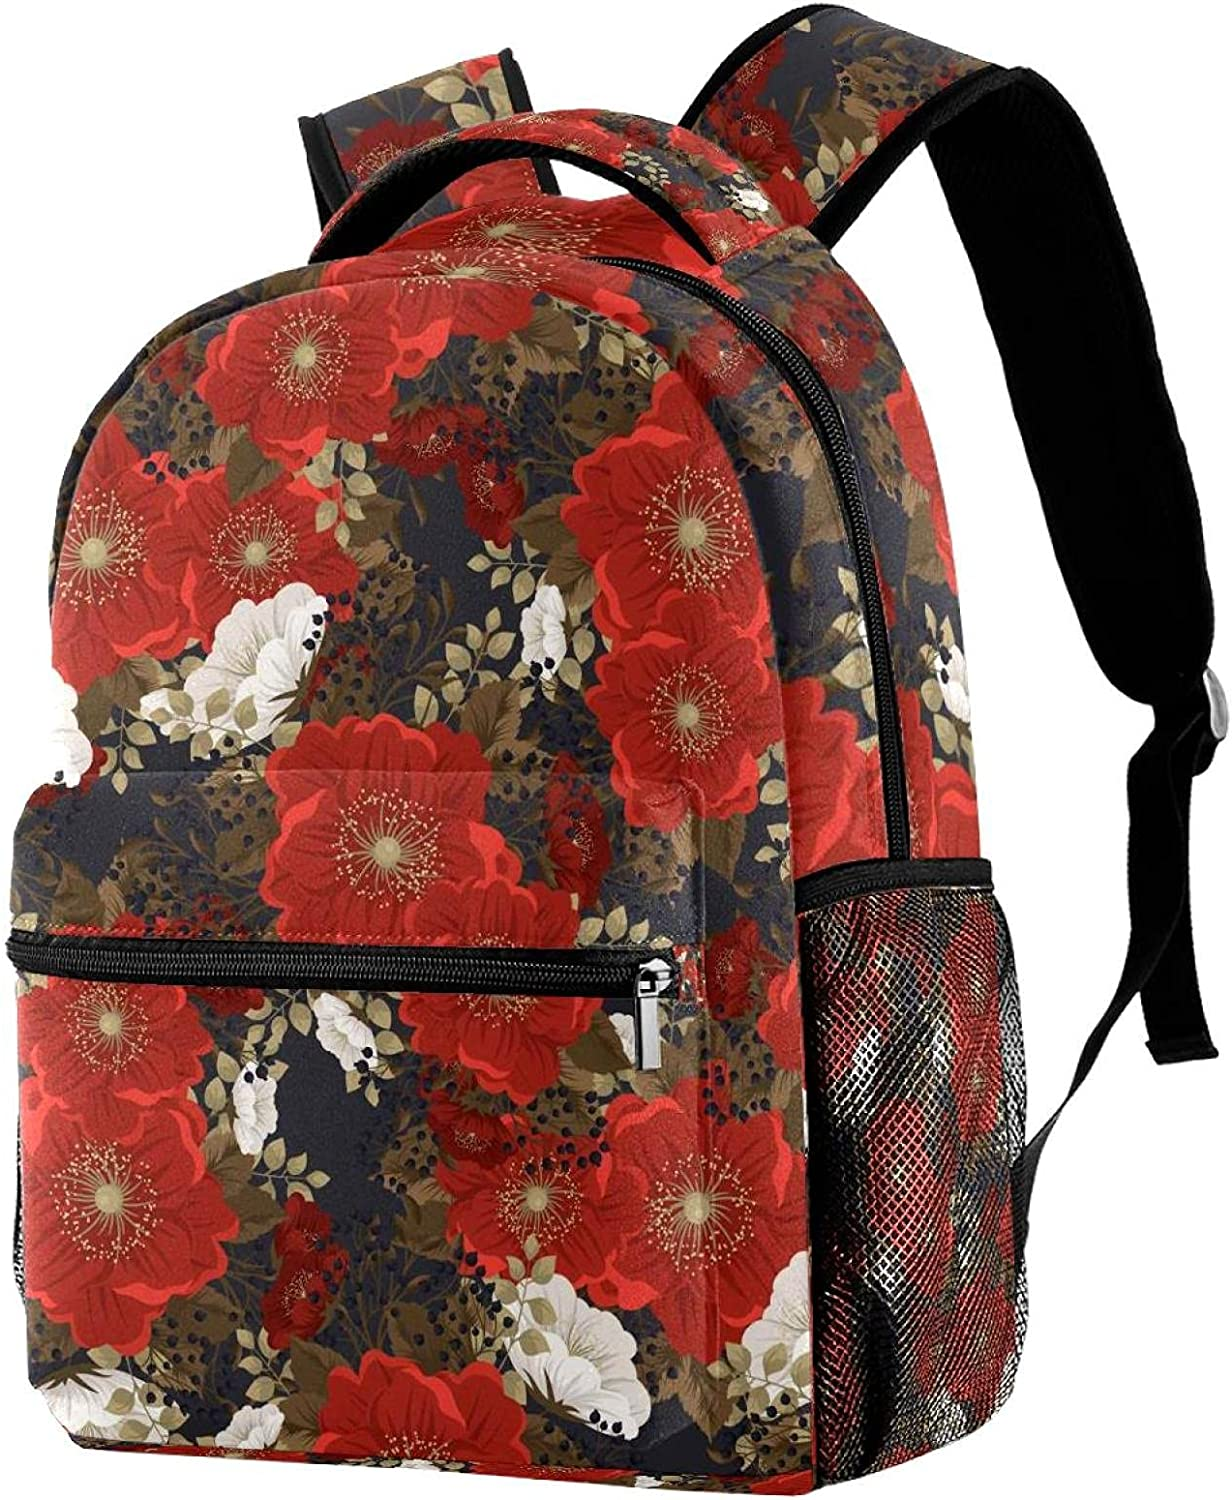 Cute Trust Purchase Light Weight Red Flower Backpacks Bags Printing wi Daypacks